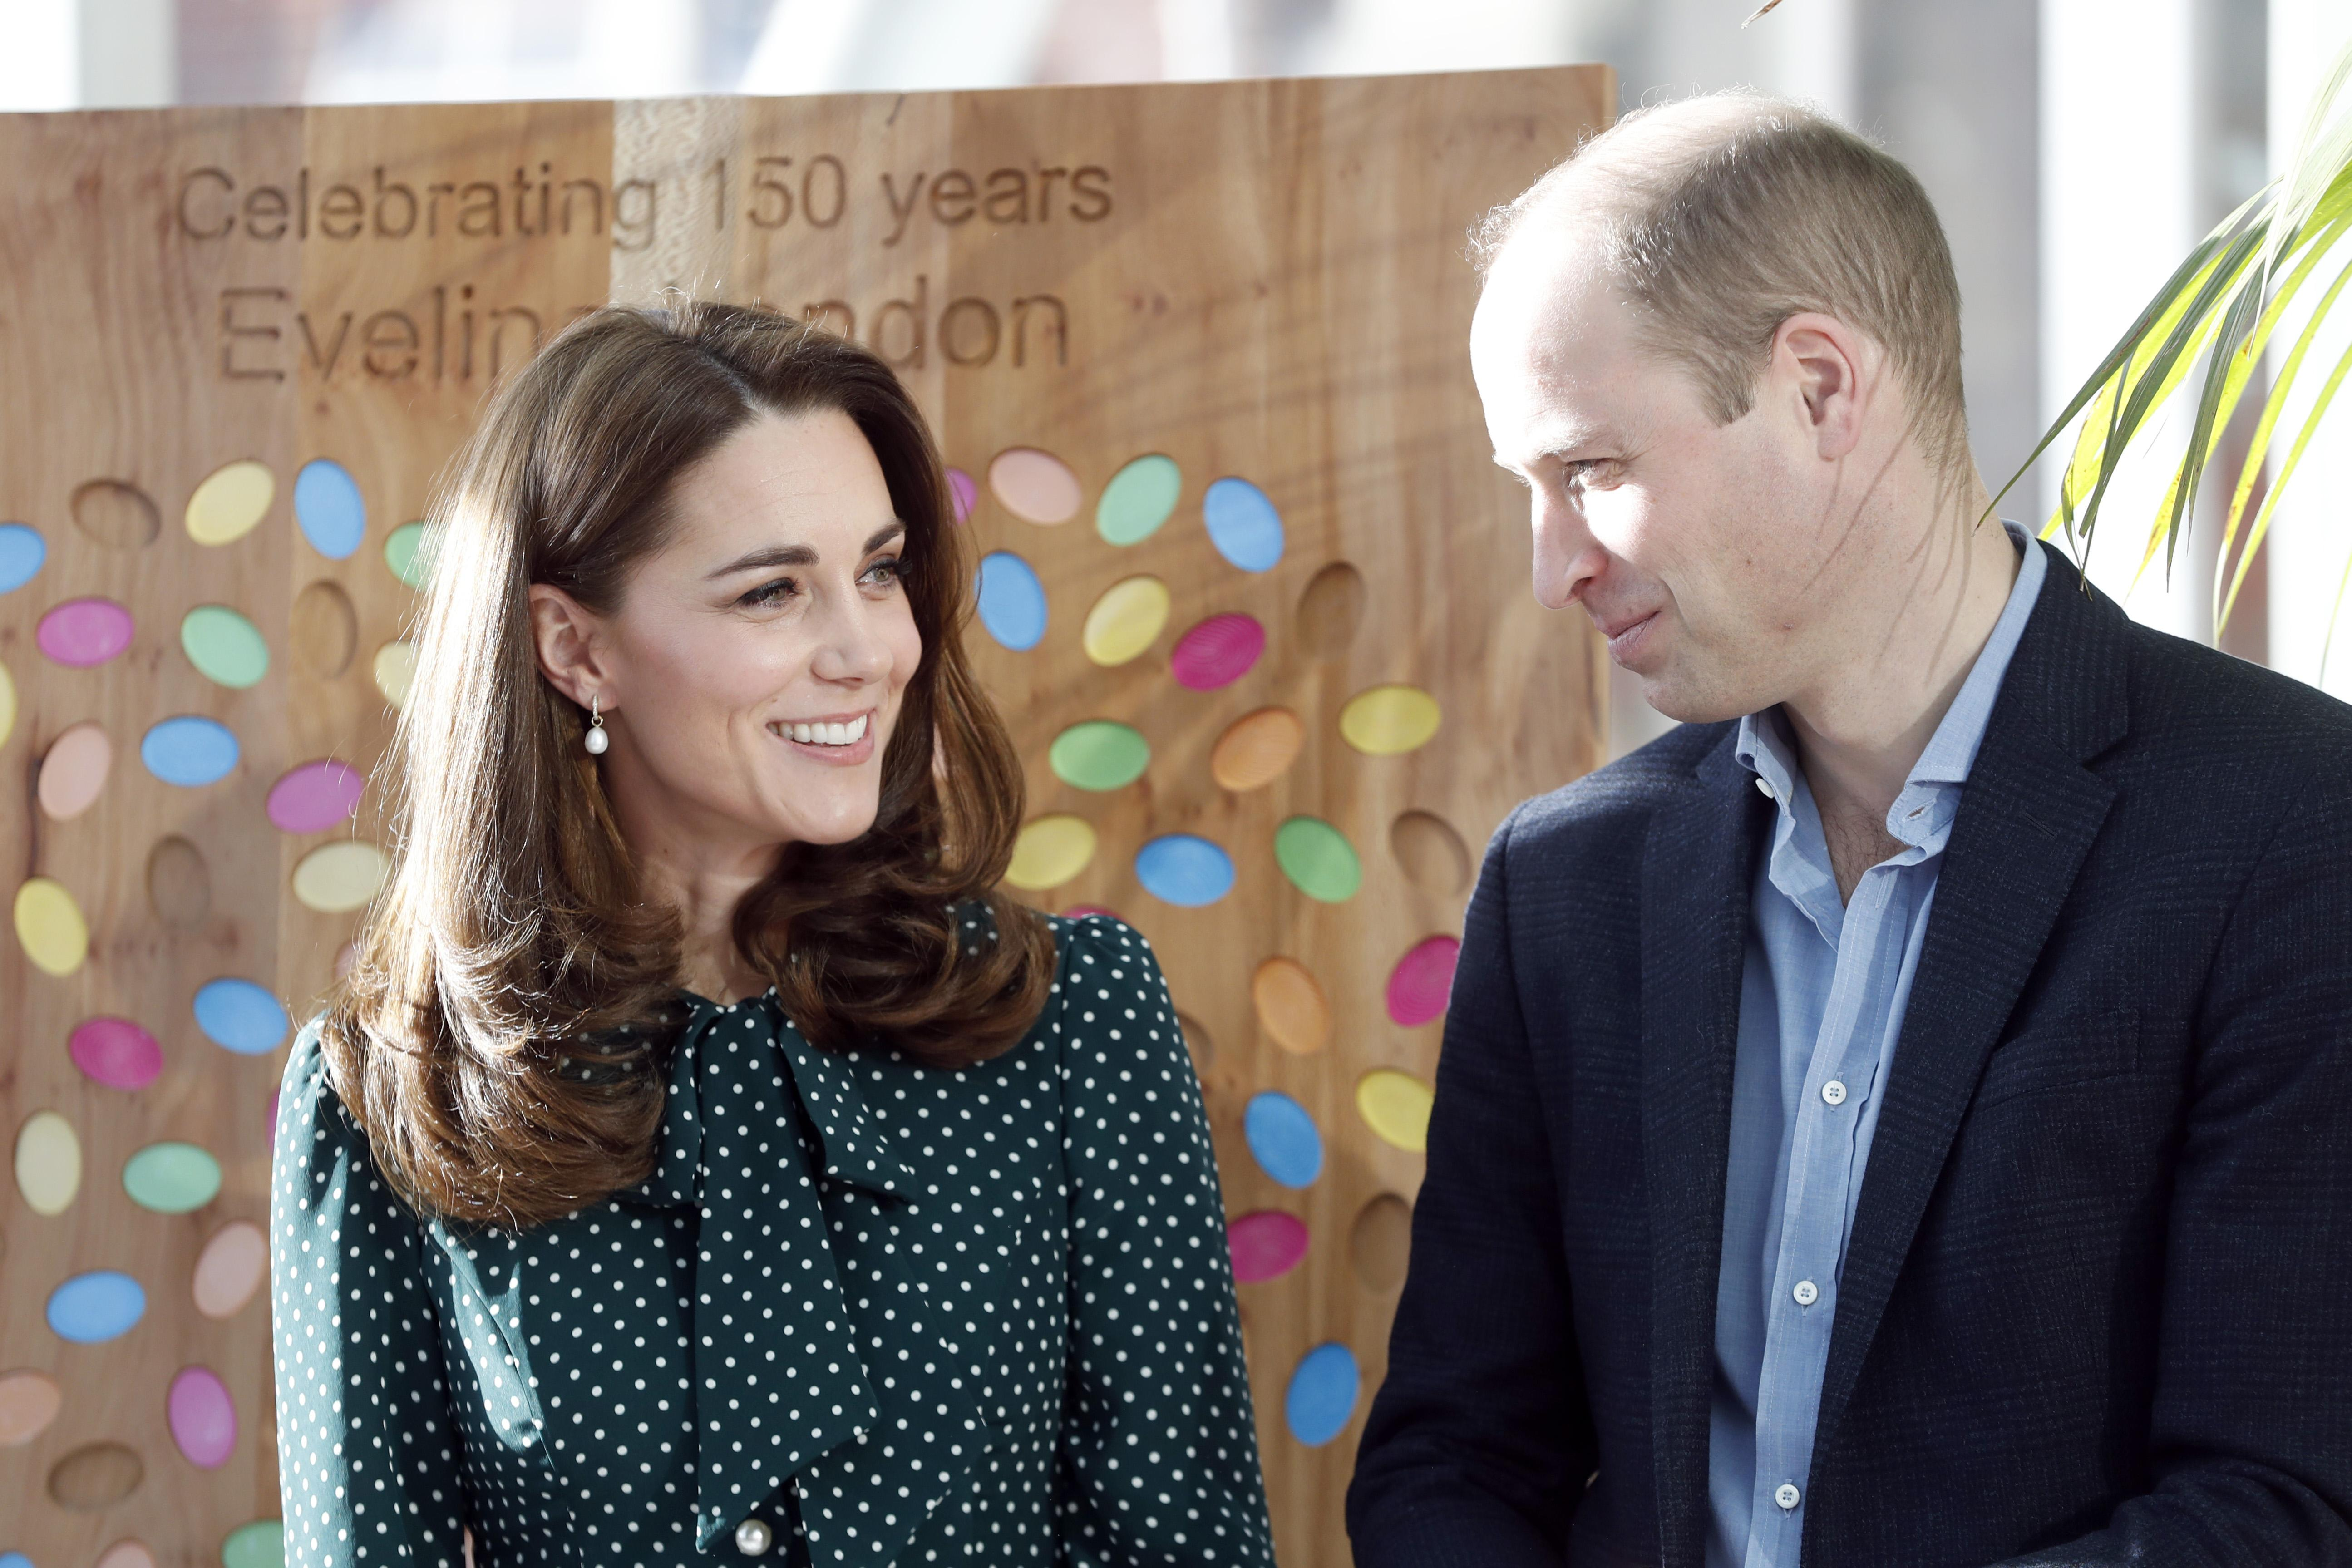 Catherine Duchess of Cambridge and Prince William Duke of Cambridge during a visit to Evelina London Childrens Hospital on Dec 11 2018 in London Photo Chris Jackson Getty Images